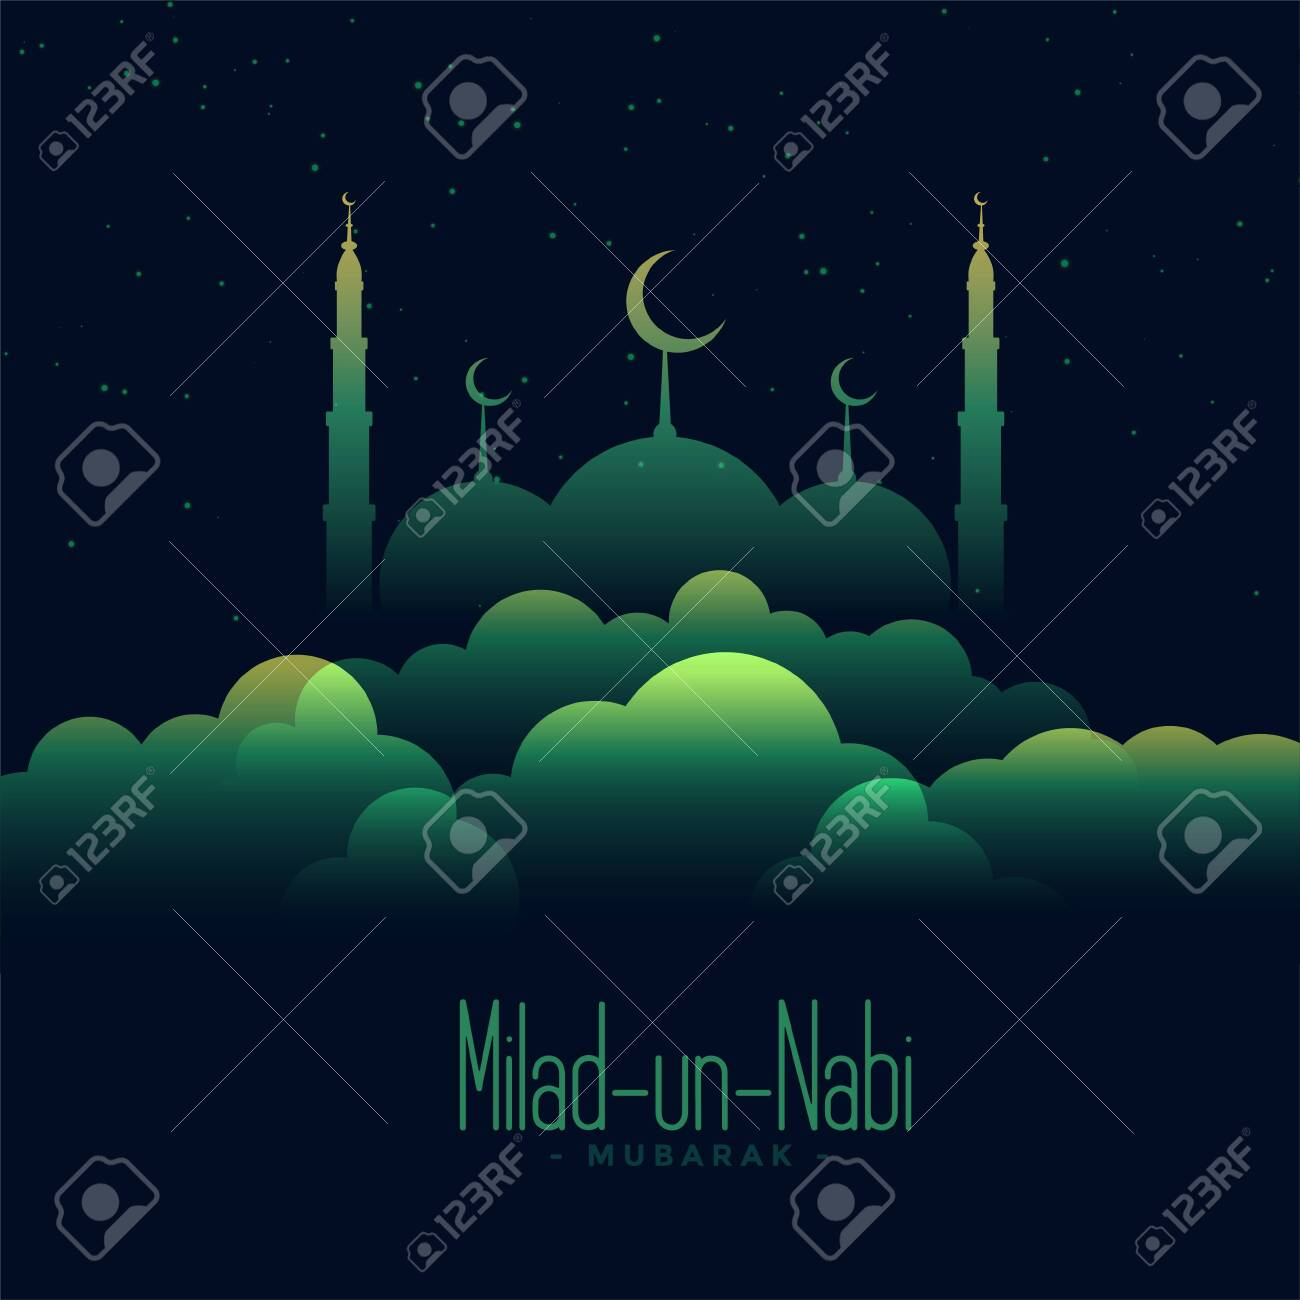 creative background of eid milad un nabi festival royalty free cliparts vectors and stock illustration image 132026576 123rf com